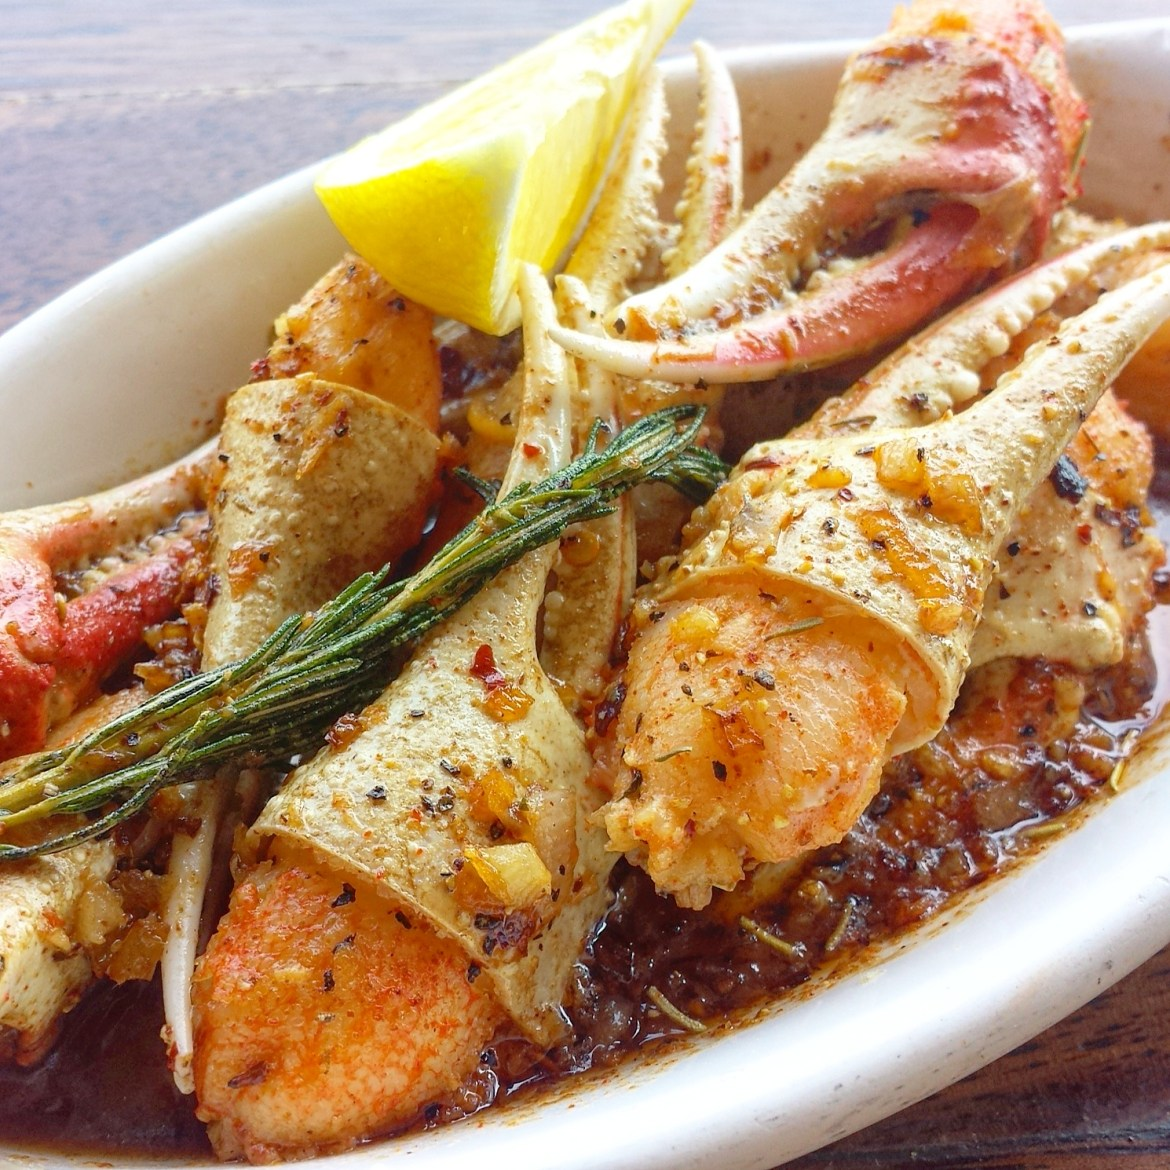 Killer Shrimp is a waterfront restaurant in Marina Del Rey. With their signature peel 'n' eat shrimp & more, this local favorite is definitely 'killer'.